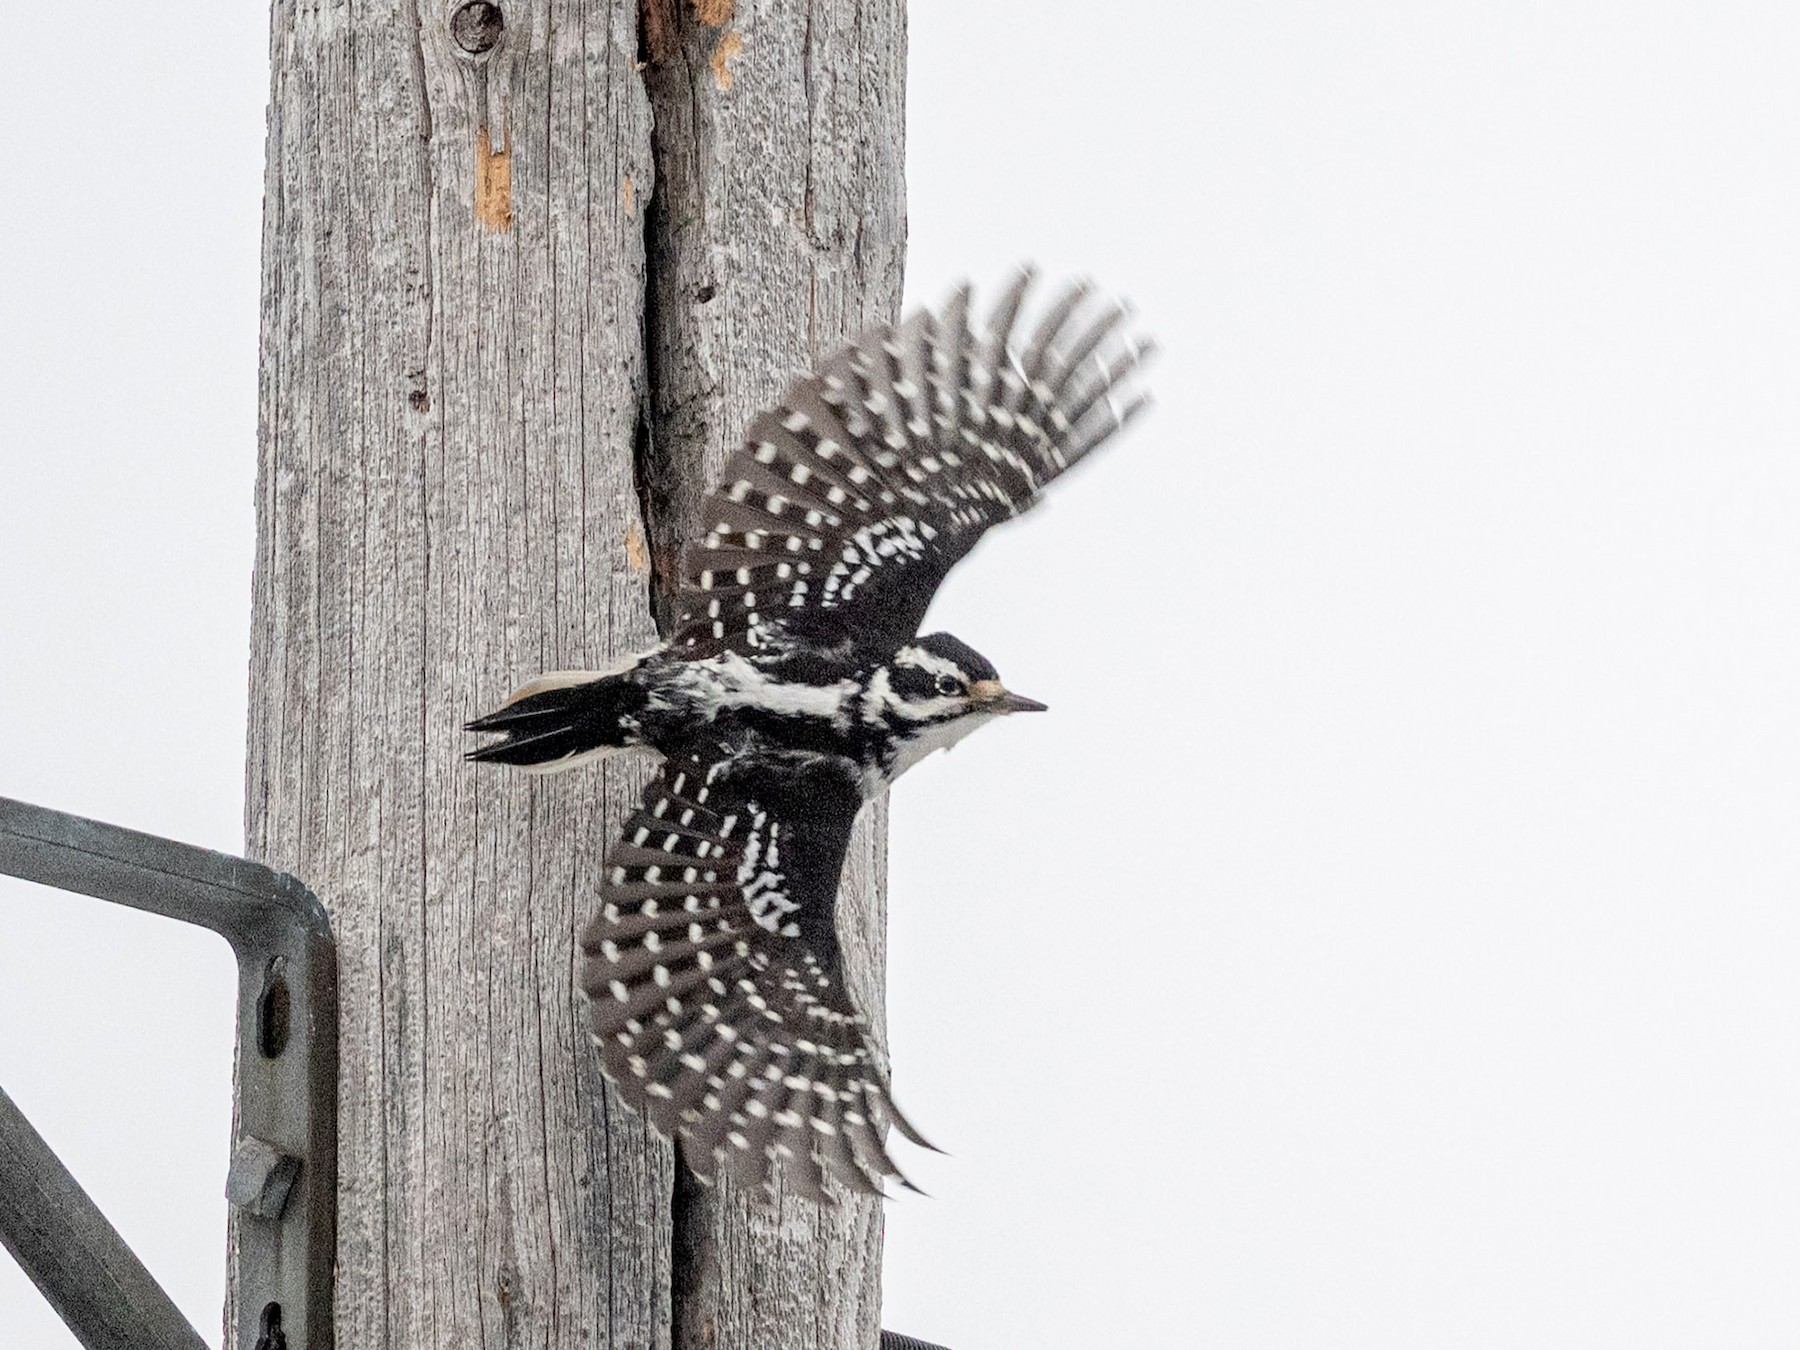 Hairy Woodpecker - Serg Tremblay